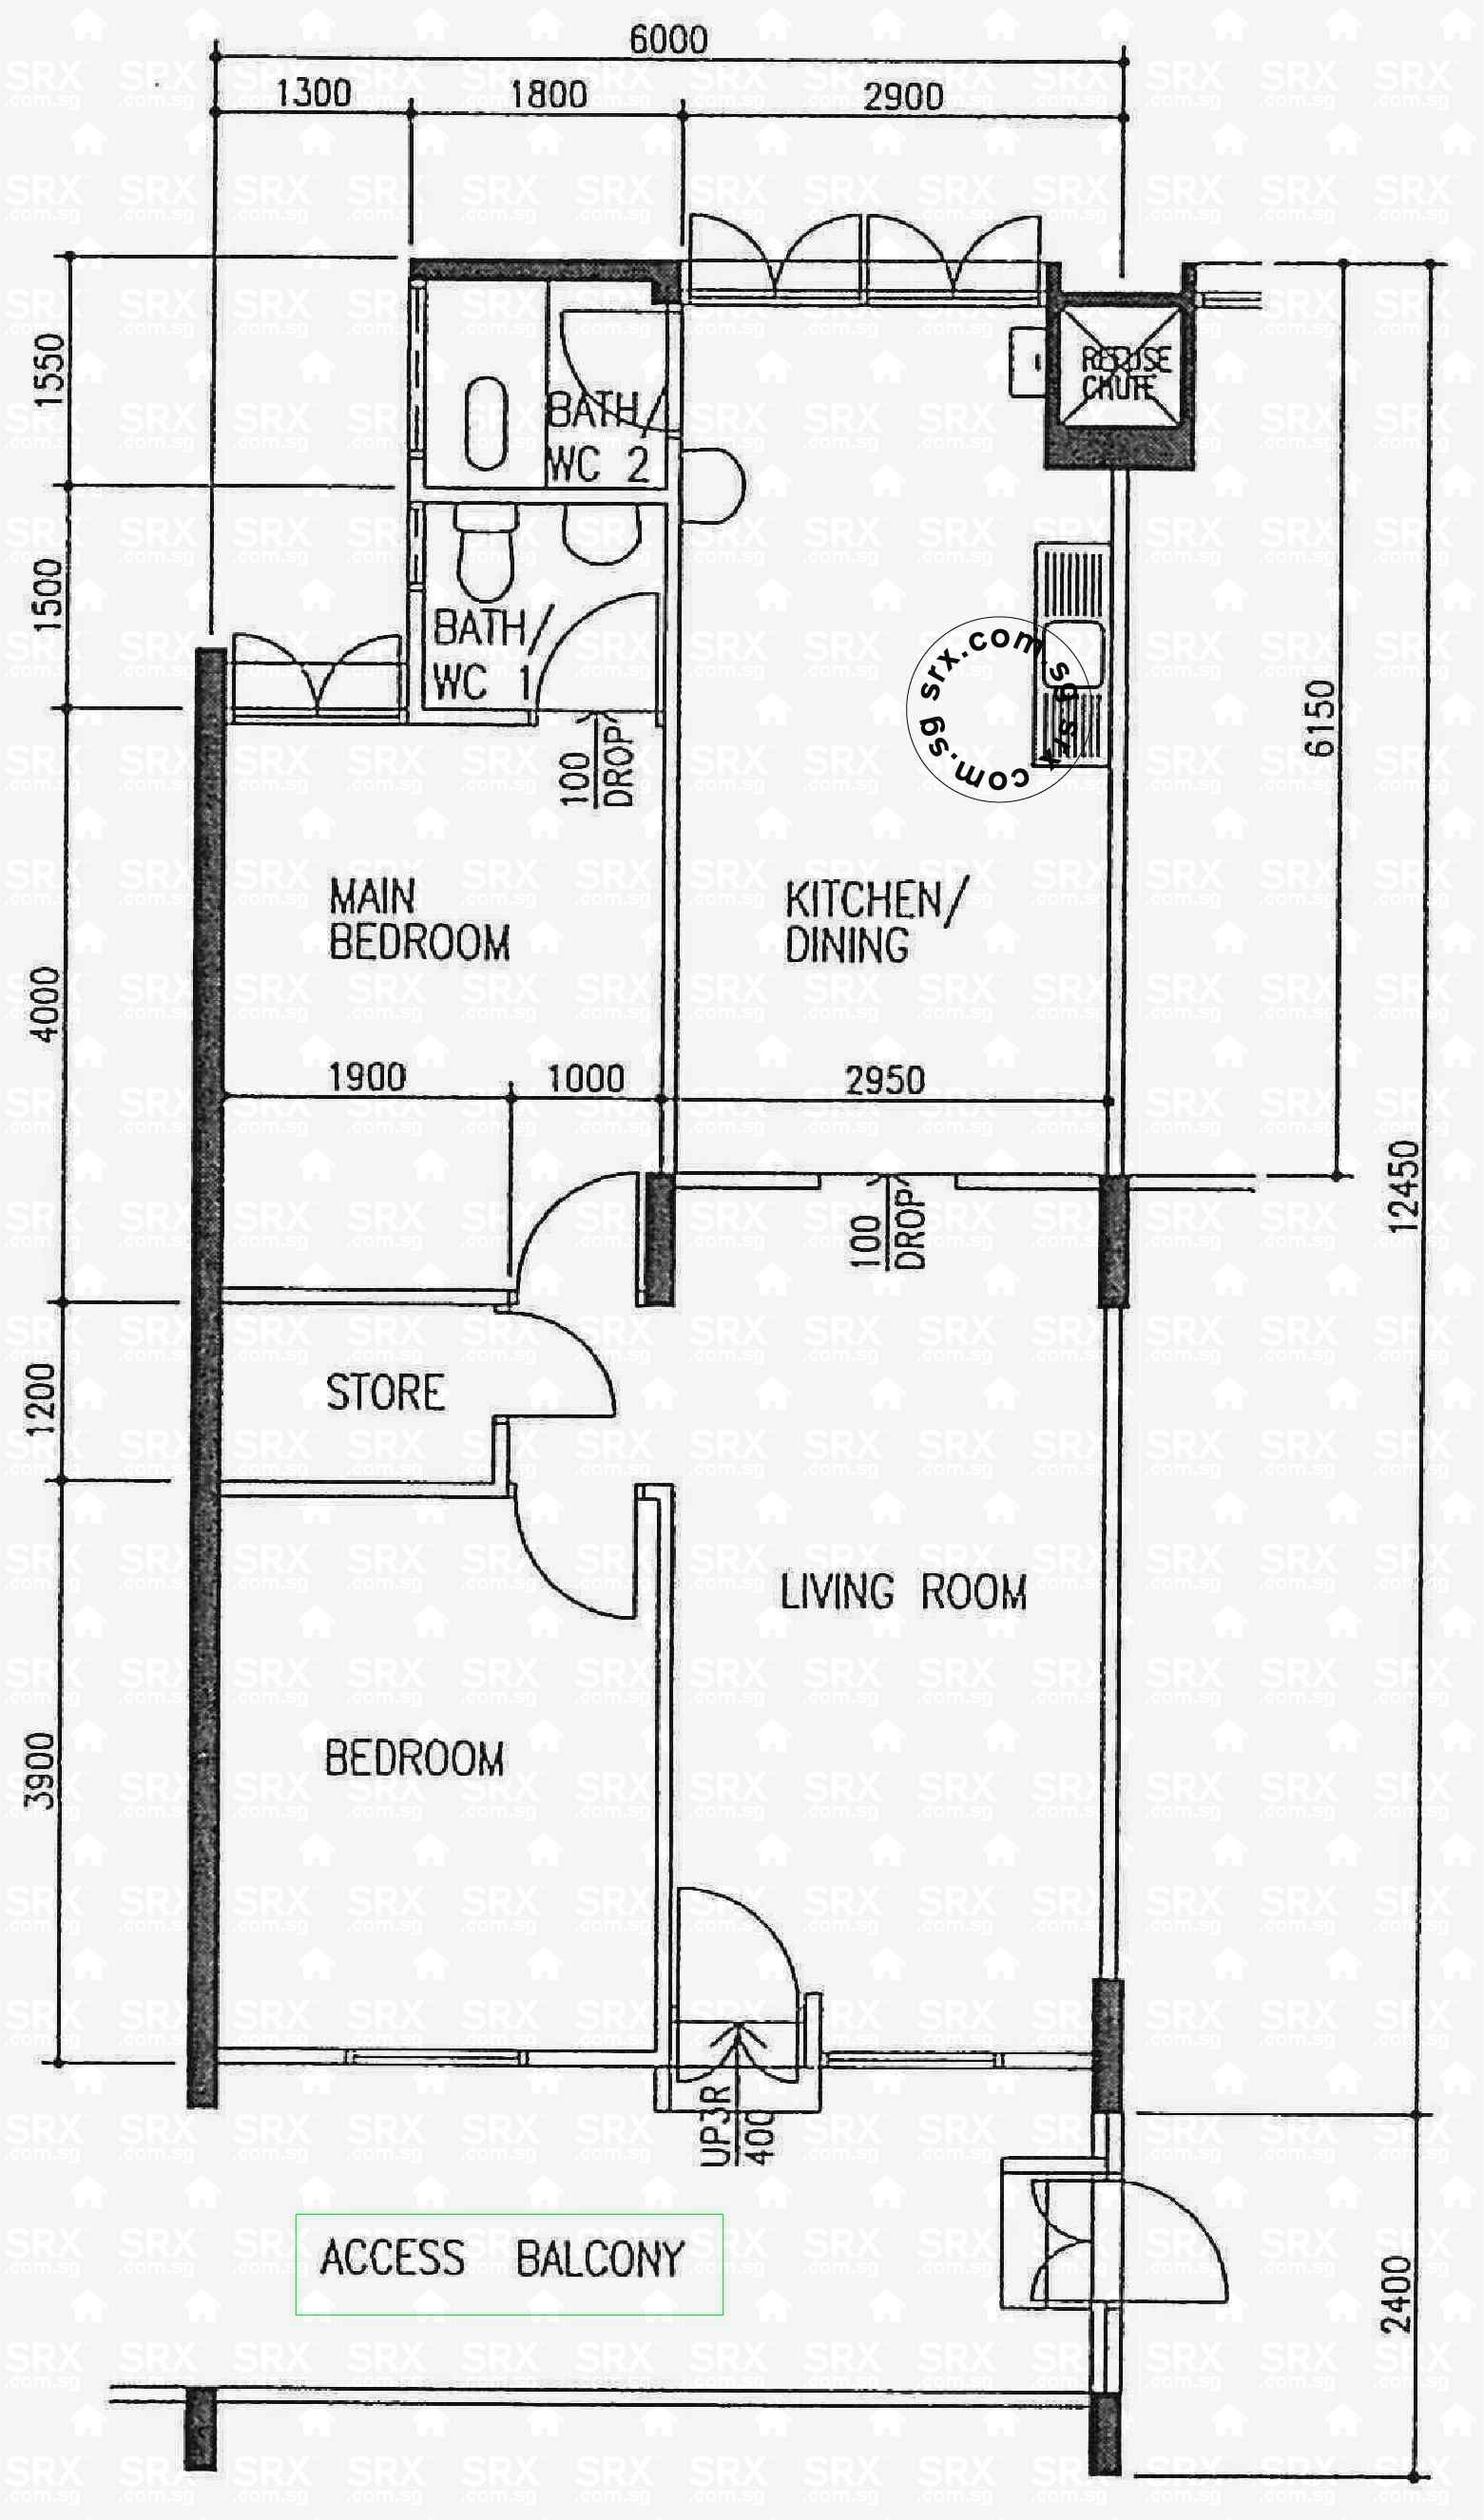 Bedok north avenue 1 hdb details srx property Floor plan view